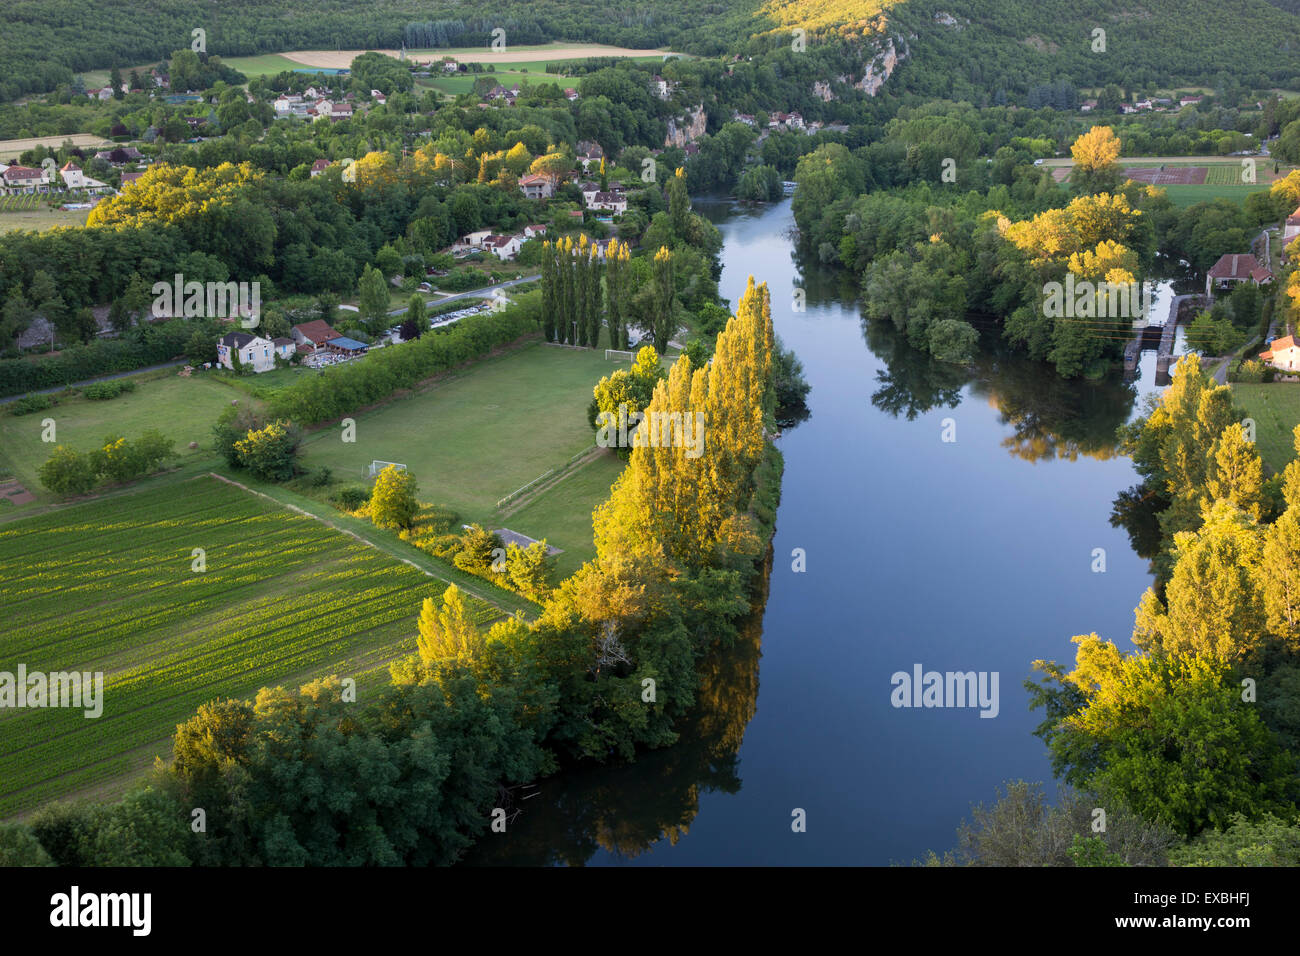 View of River Lot and Vallee du Lot from Saint-Cirq-Lapopie, Midi-Pyrenees, France Stock Photo